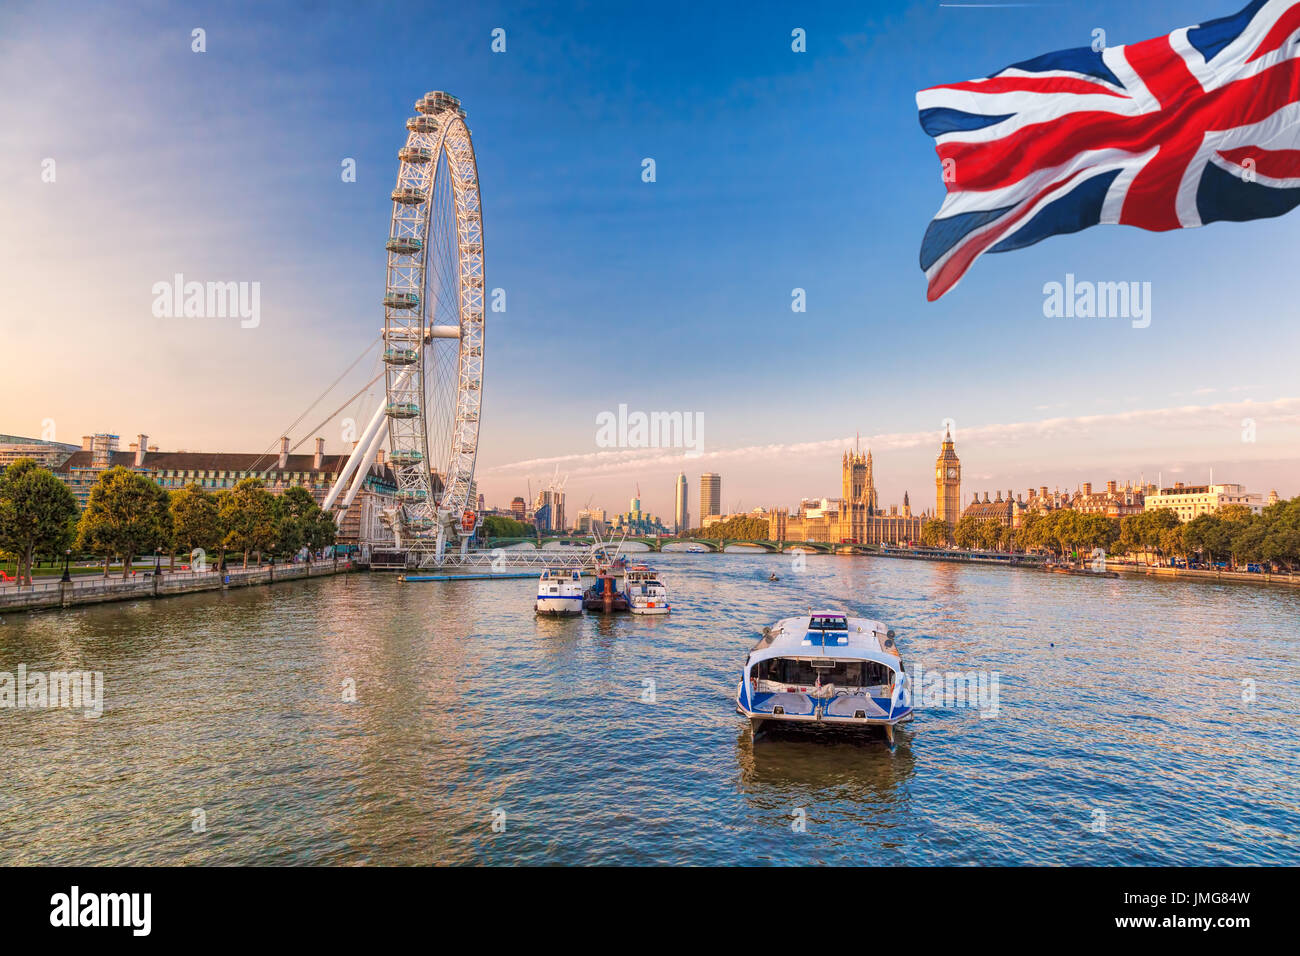 Sunrise with Big Ben, Palace of Westminster, London Eye, Westminster Bridge, River Thames, London, England, UK. - Stock Image